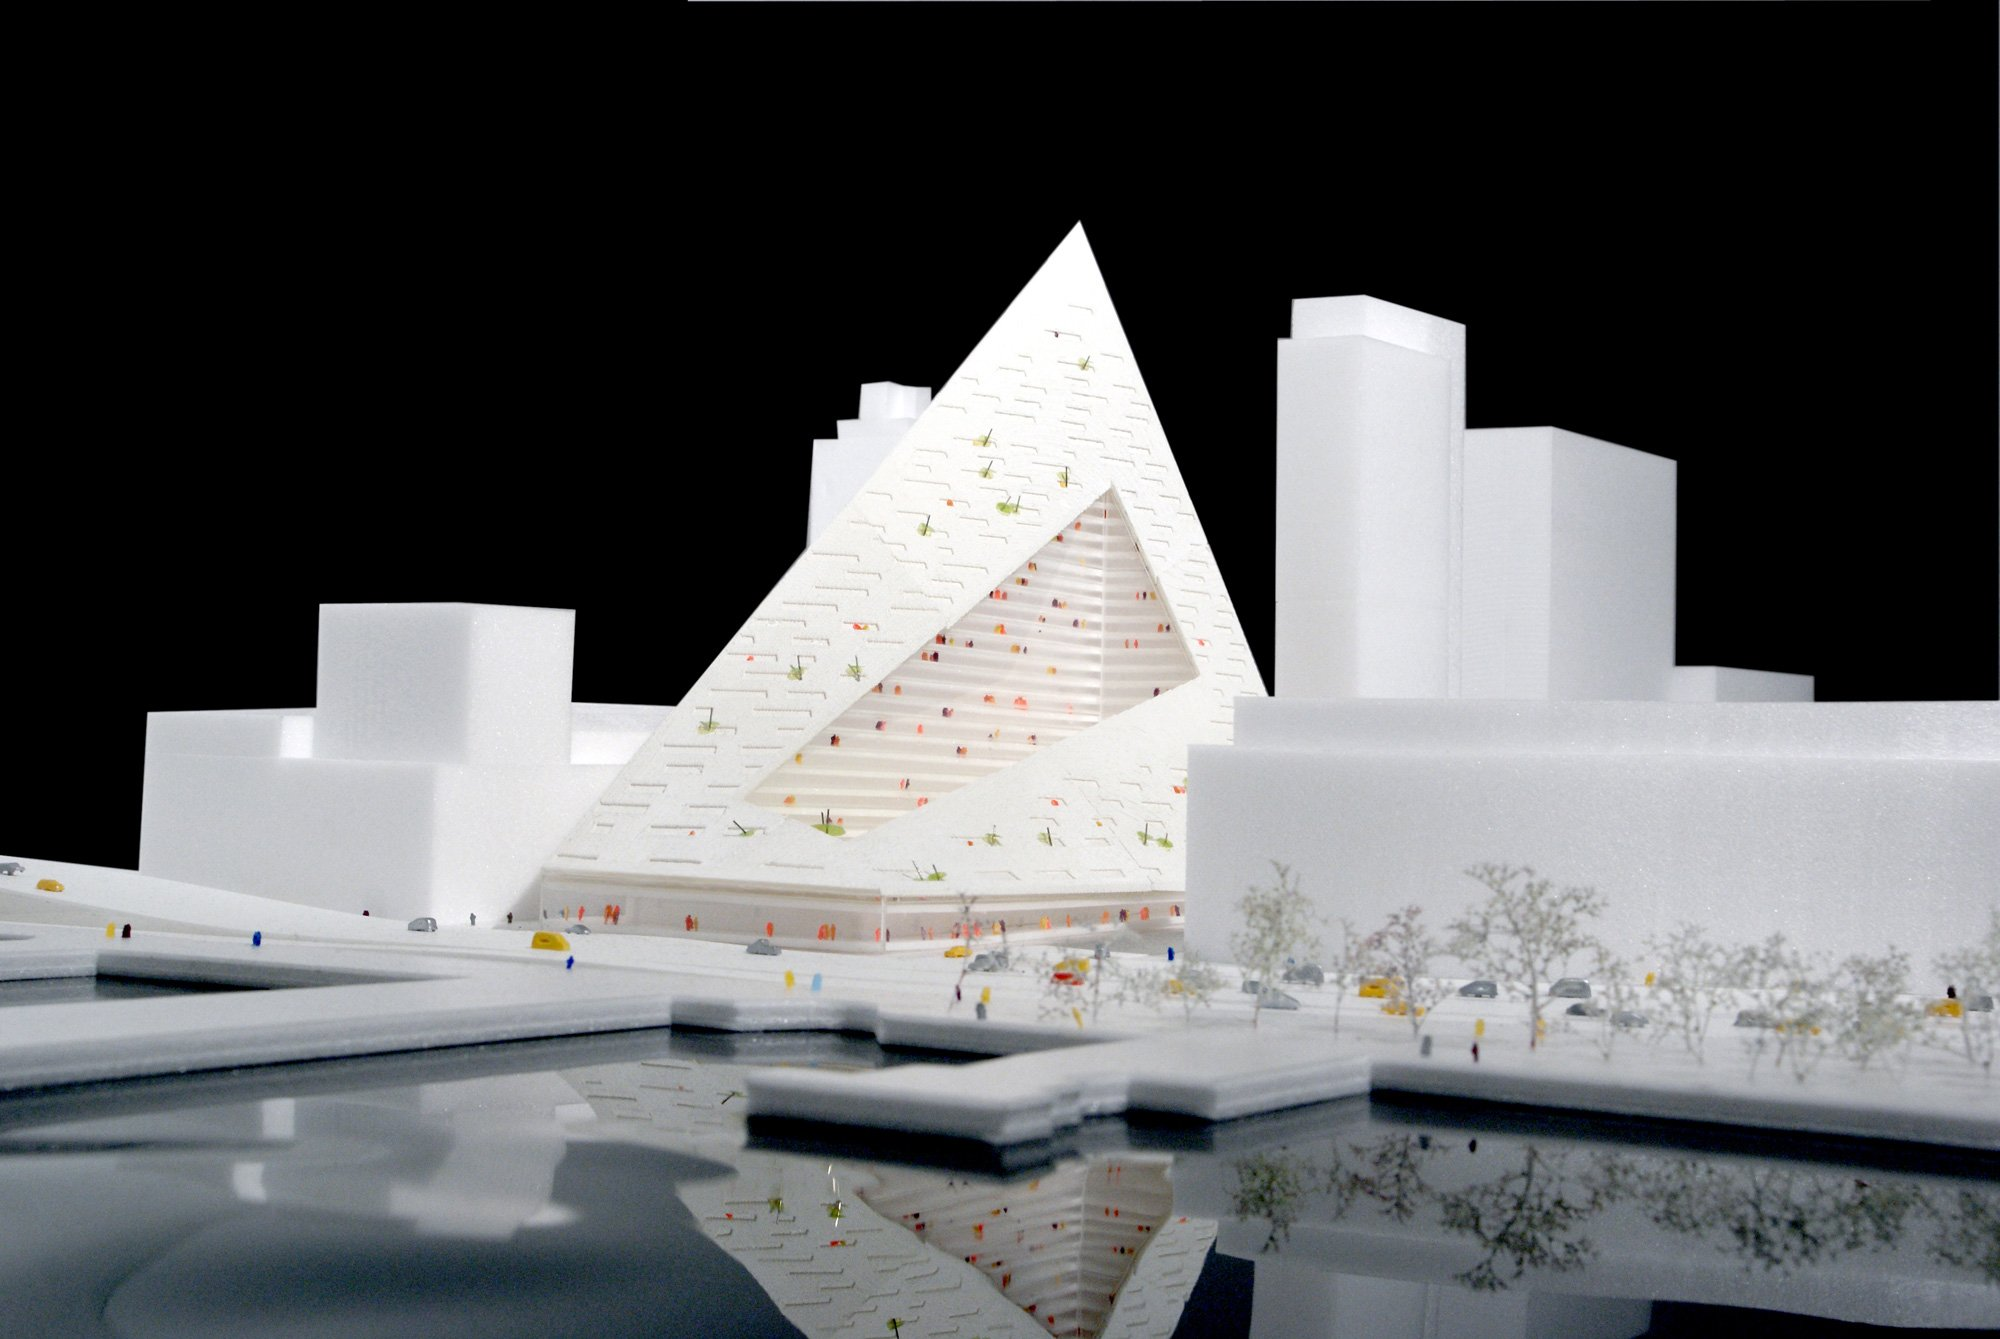 MODELLO © Bjarke Ingels Group